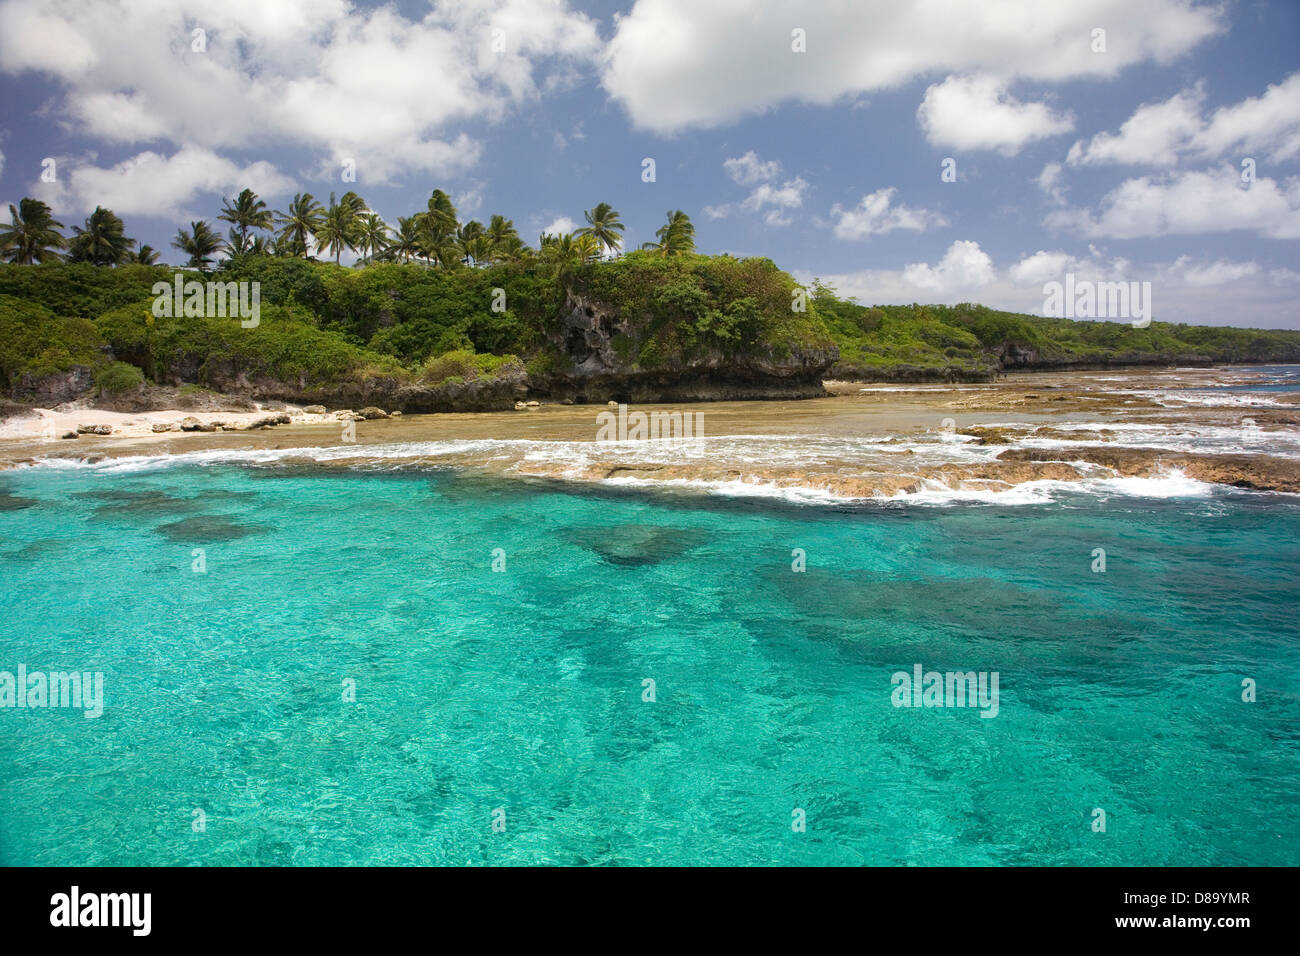 Coastline of Alofi, Niue, South Pacific Island. - Stock Image